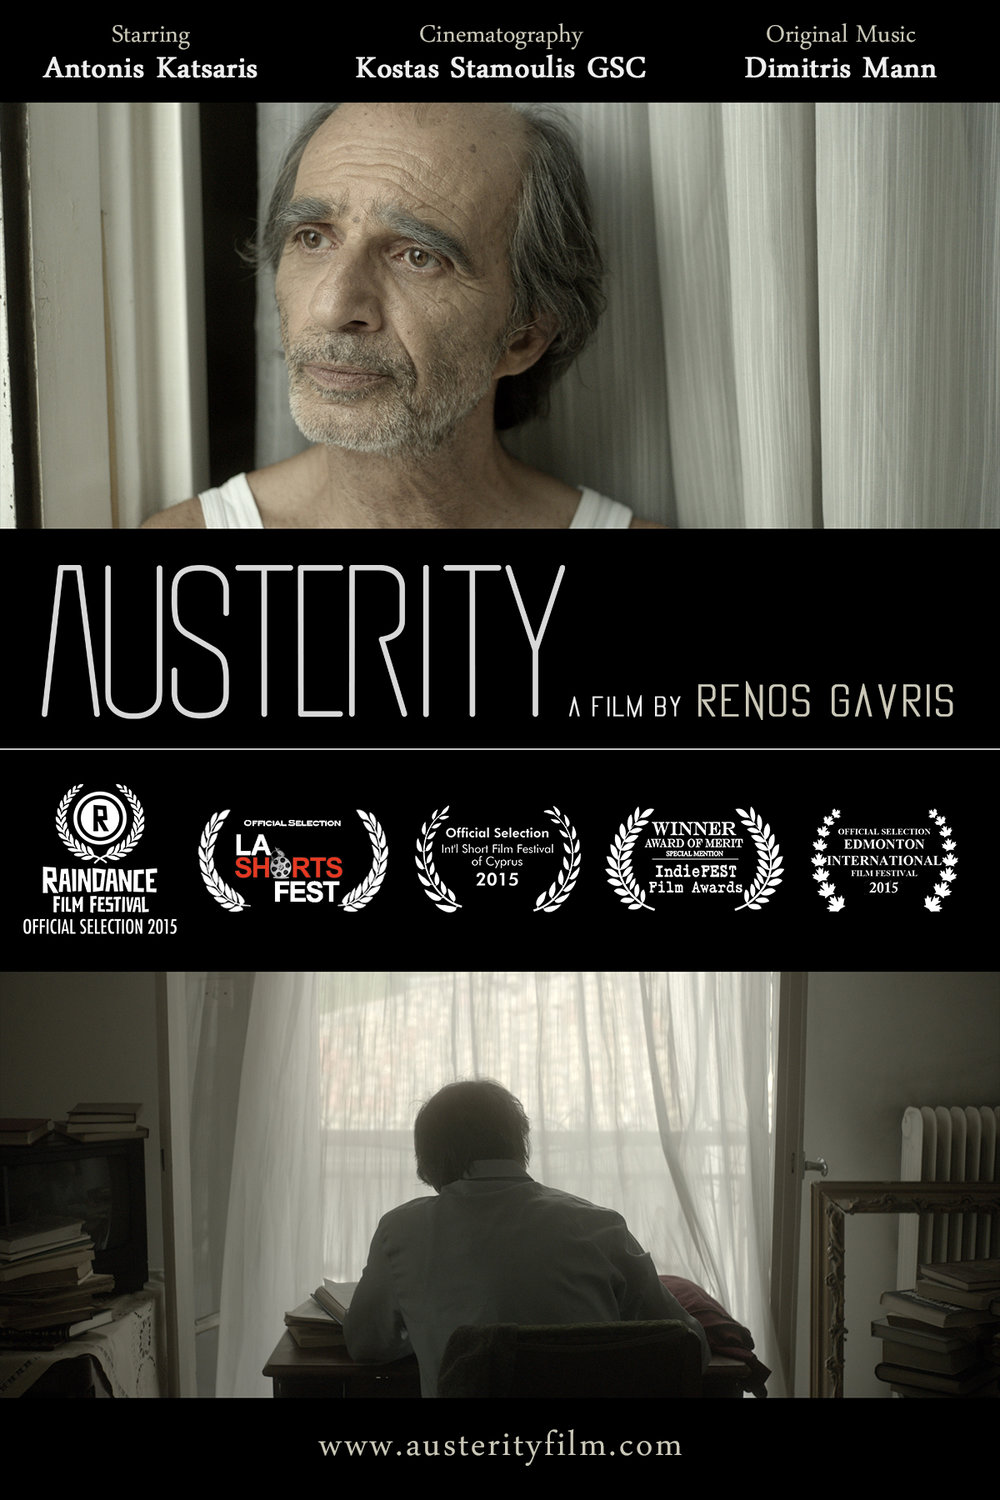 Austerity screening flyer.jpg